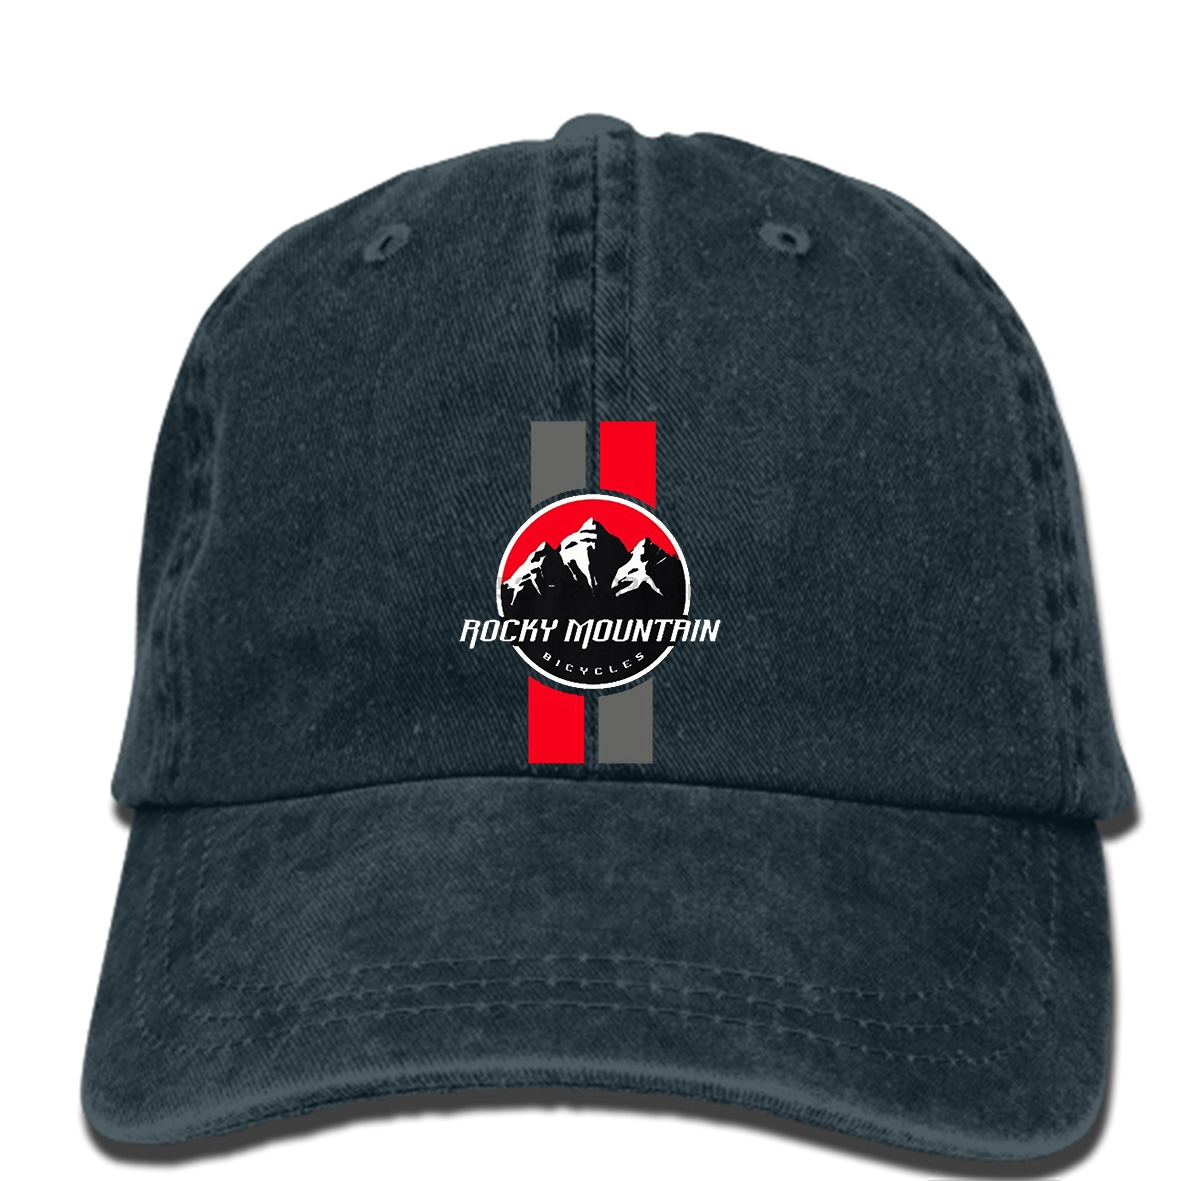 00ca895c5266c1 Detail Feedback Questions about hip hop Baseball caps Rocky Mountain  Bicycles Urge Men's d cap on Aliexpress.com | alibaba group